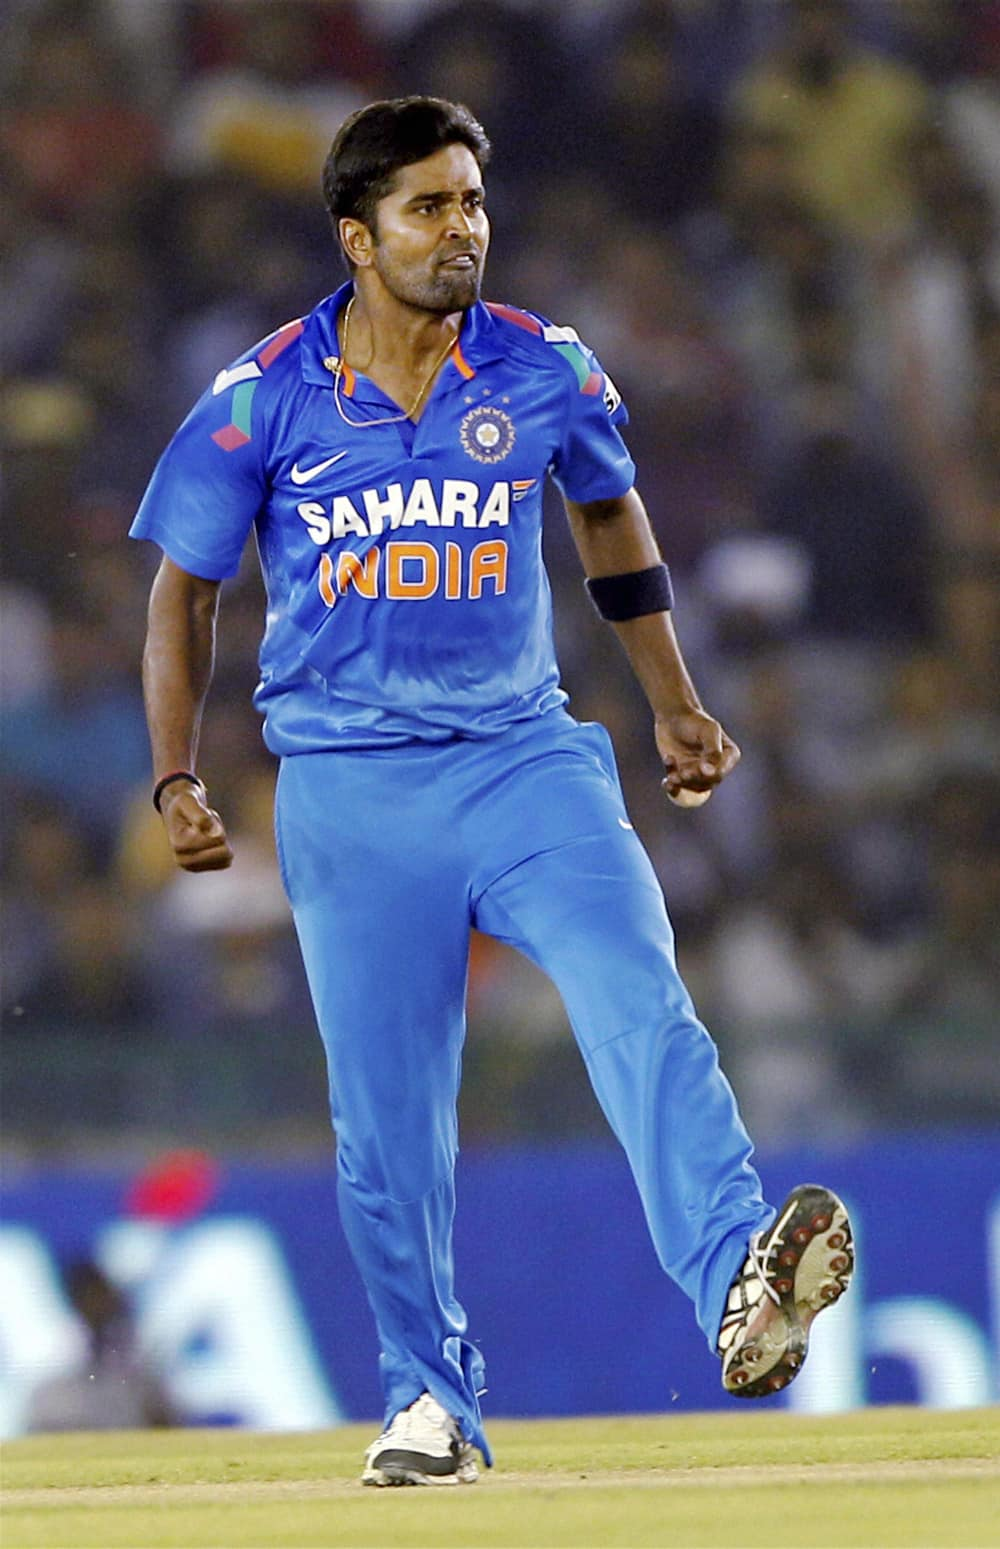 R Vinay Kumar of India reacts after taking the wicket of Australian batsman PJ Hughes during the 3rd ODI match at PCA stadium in Mohali.